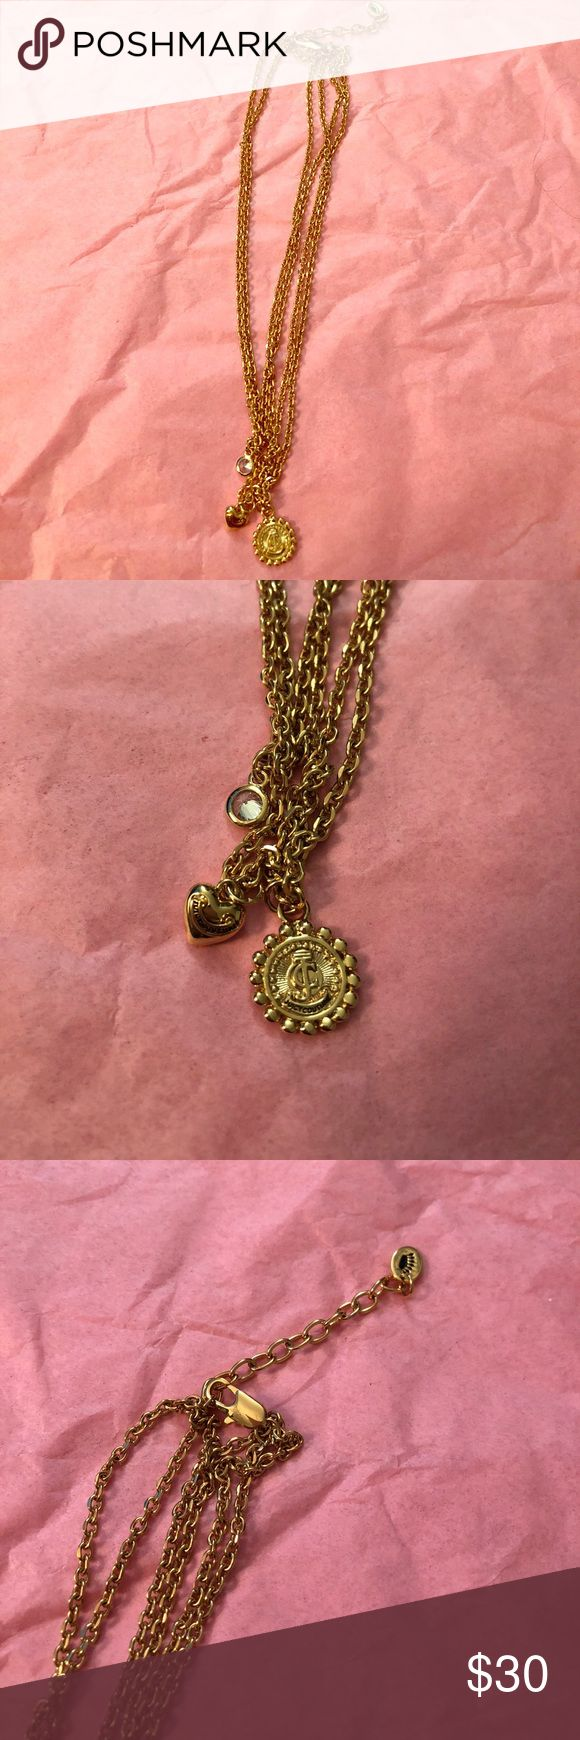 Juicy Couture necklace Never been worn. Layered chain in gold Juicy Couture Jewelry Necklaces